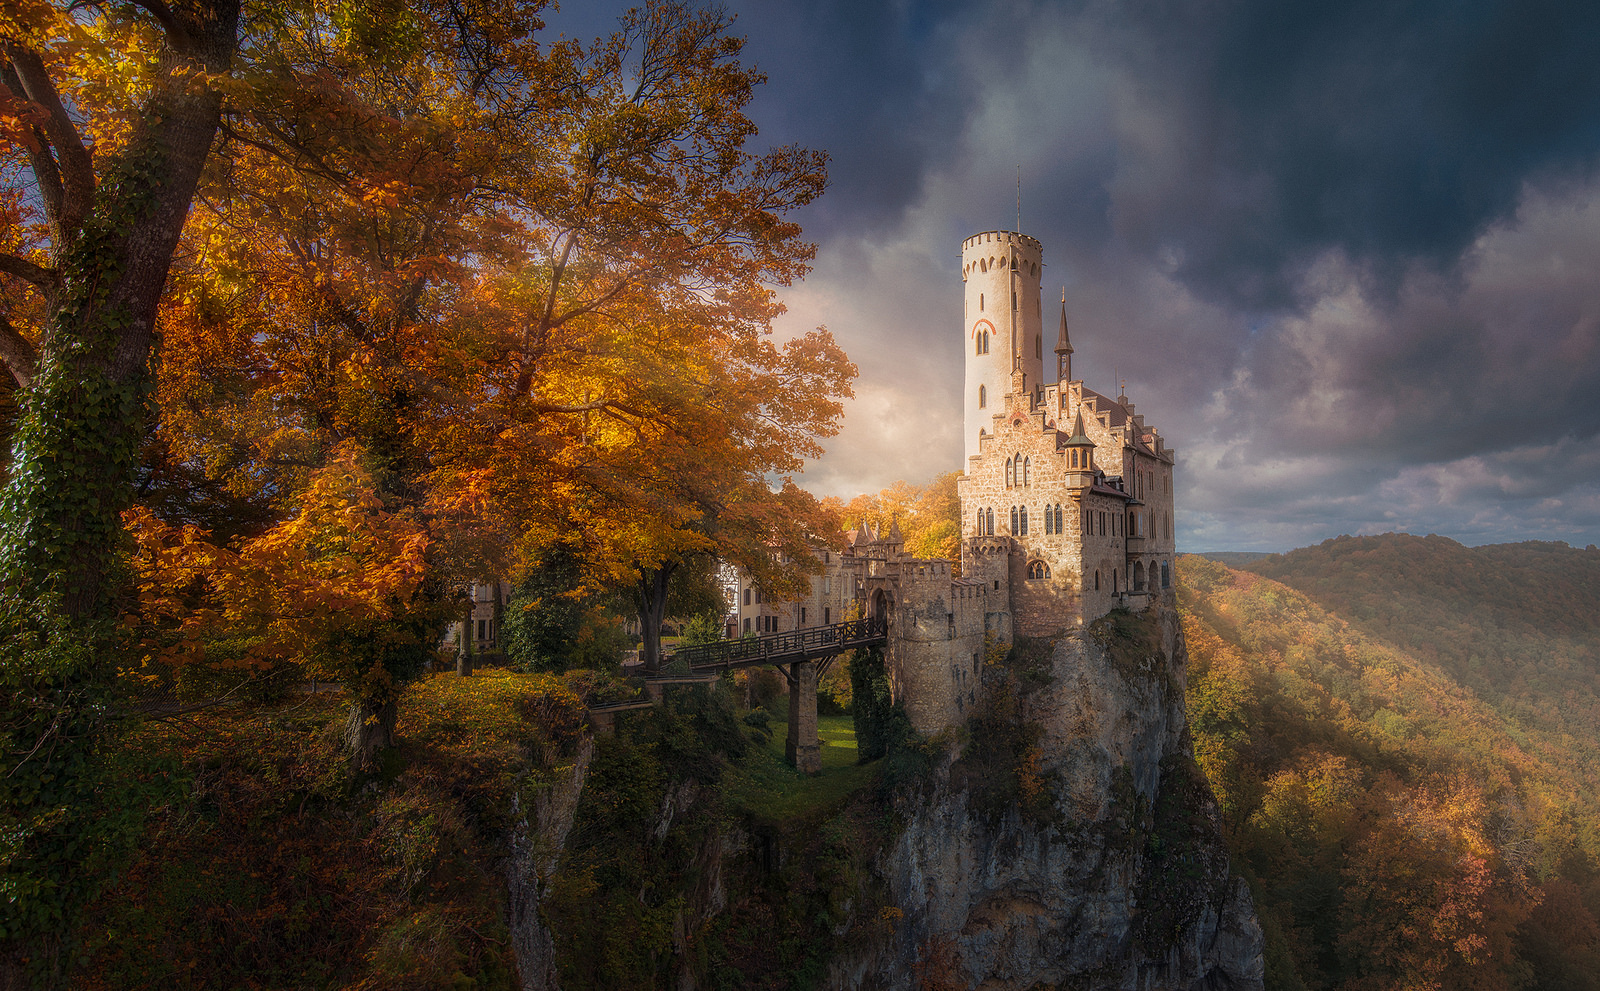 Fall Foliage Wallpaper Widescreen Castle In Autumn Wallpaper And Background Image 1600x991